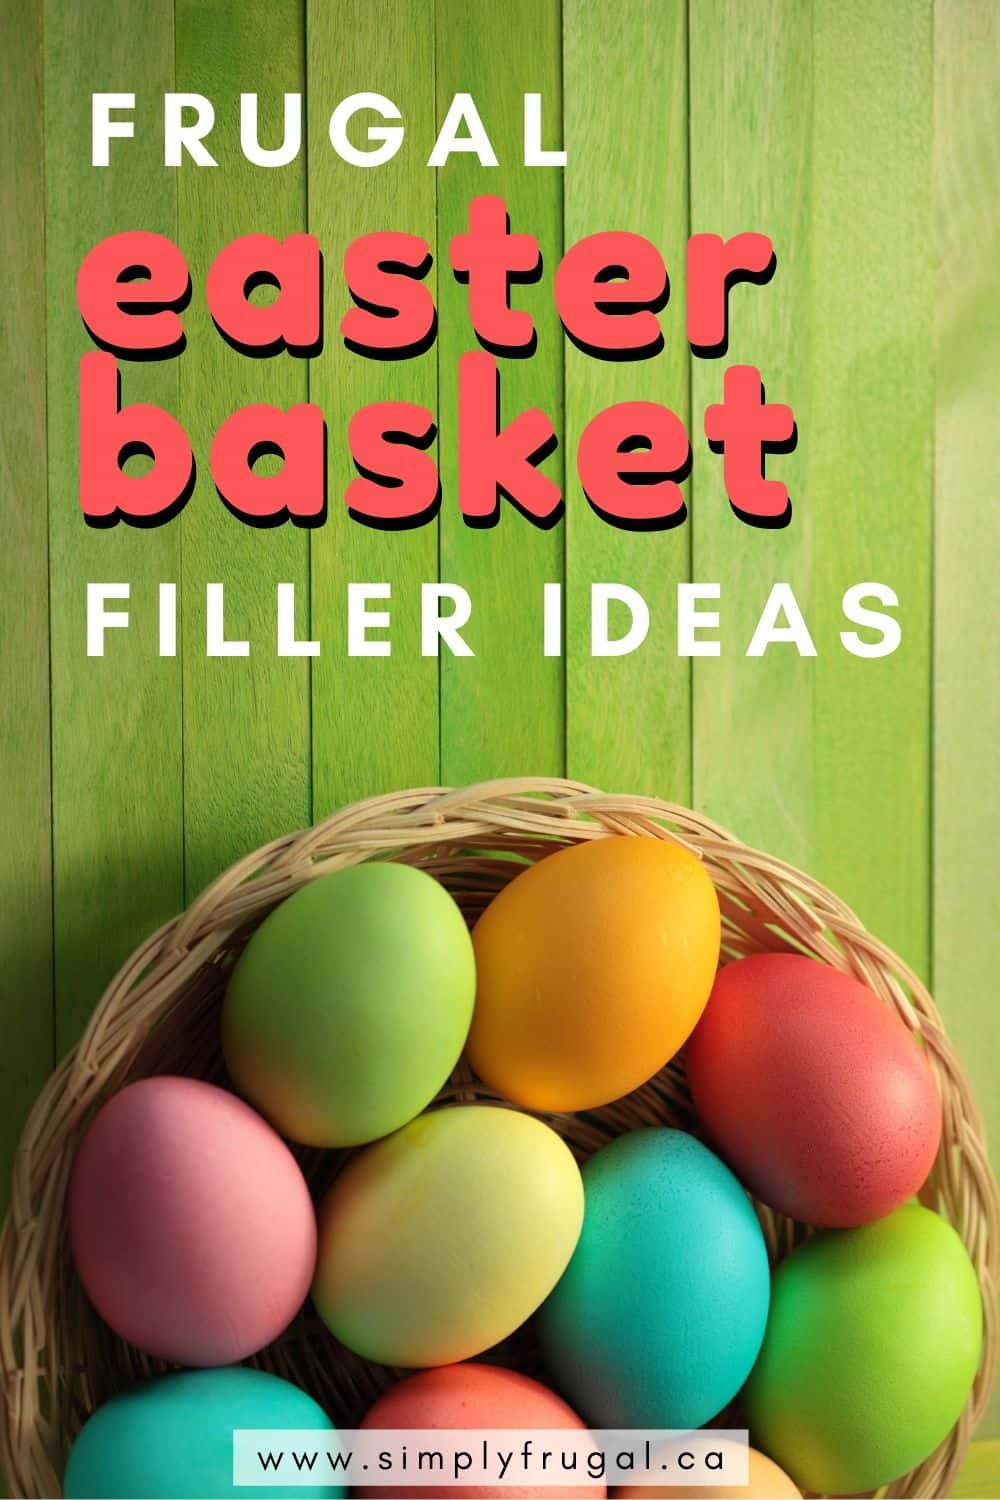 Easter basket filler ideas. 30 Fun and Frugal Easter Basket Filler Ideas you're going to love!